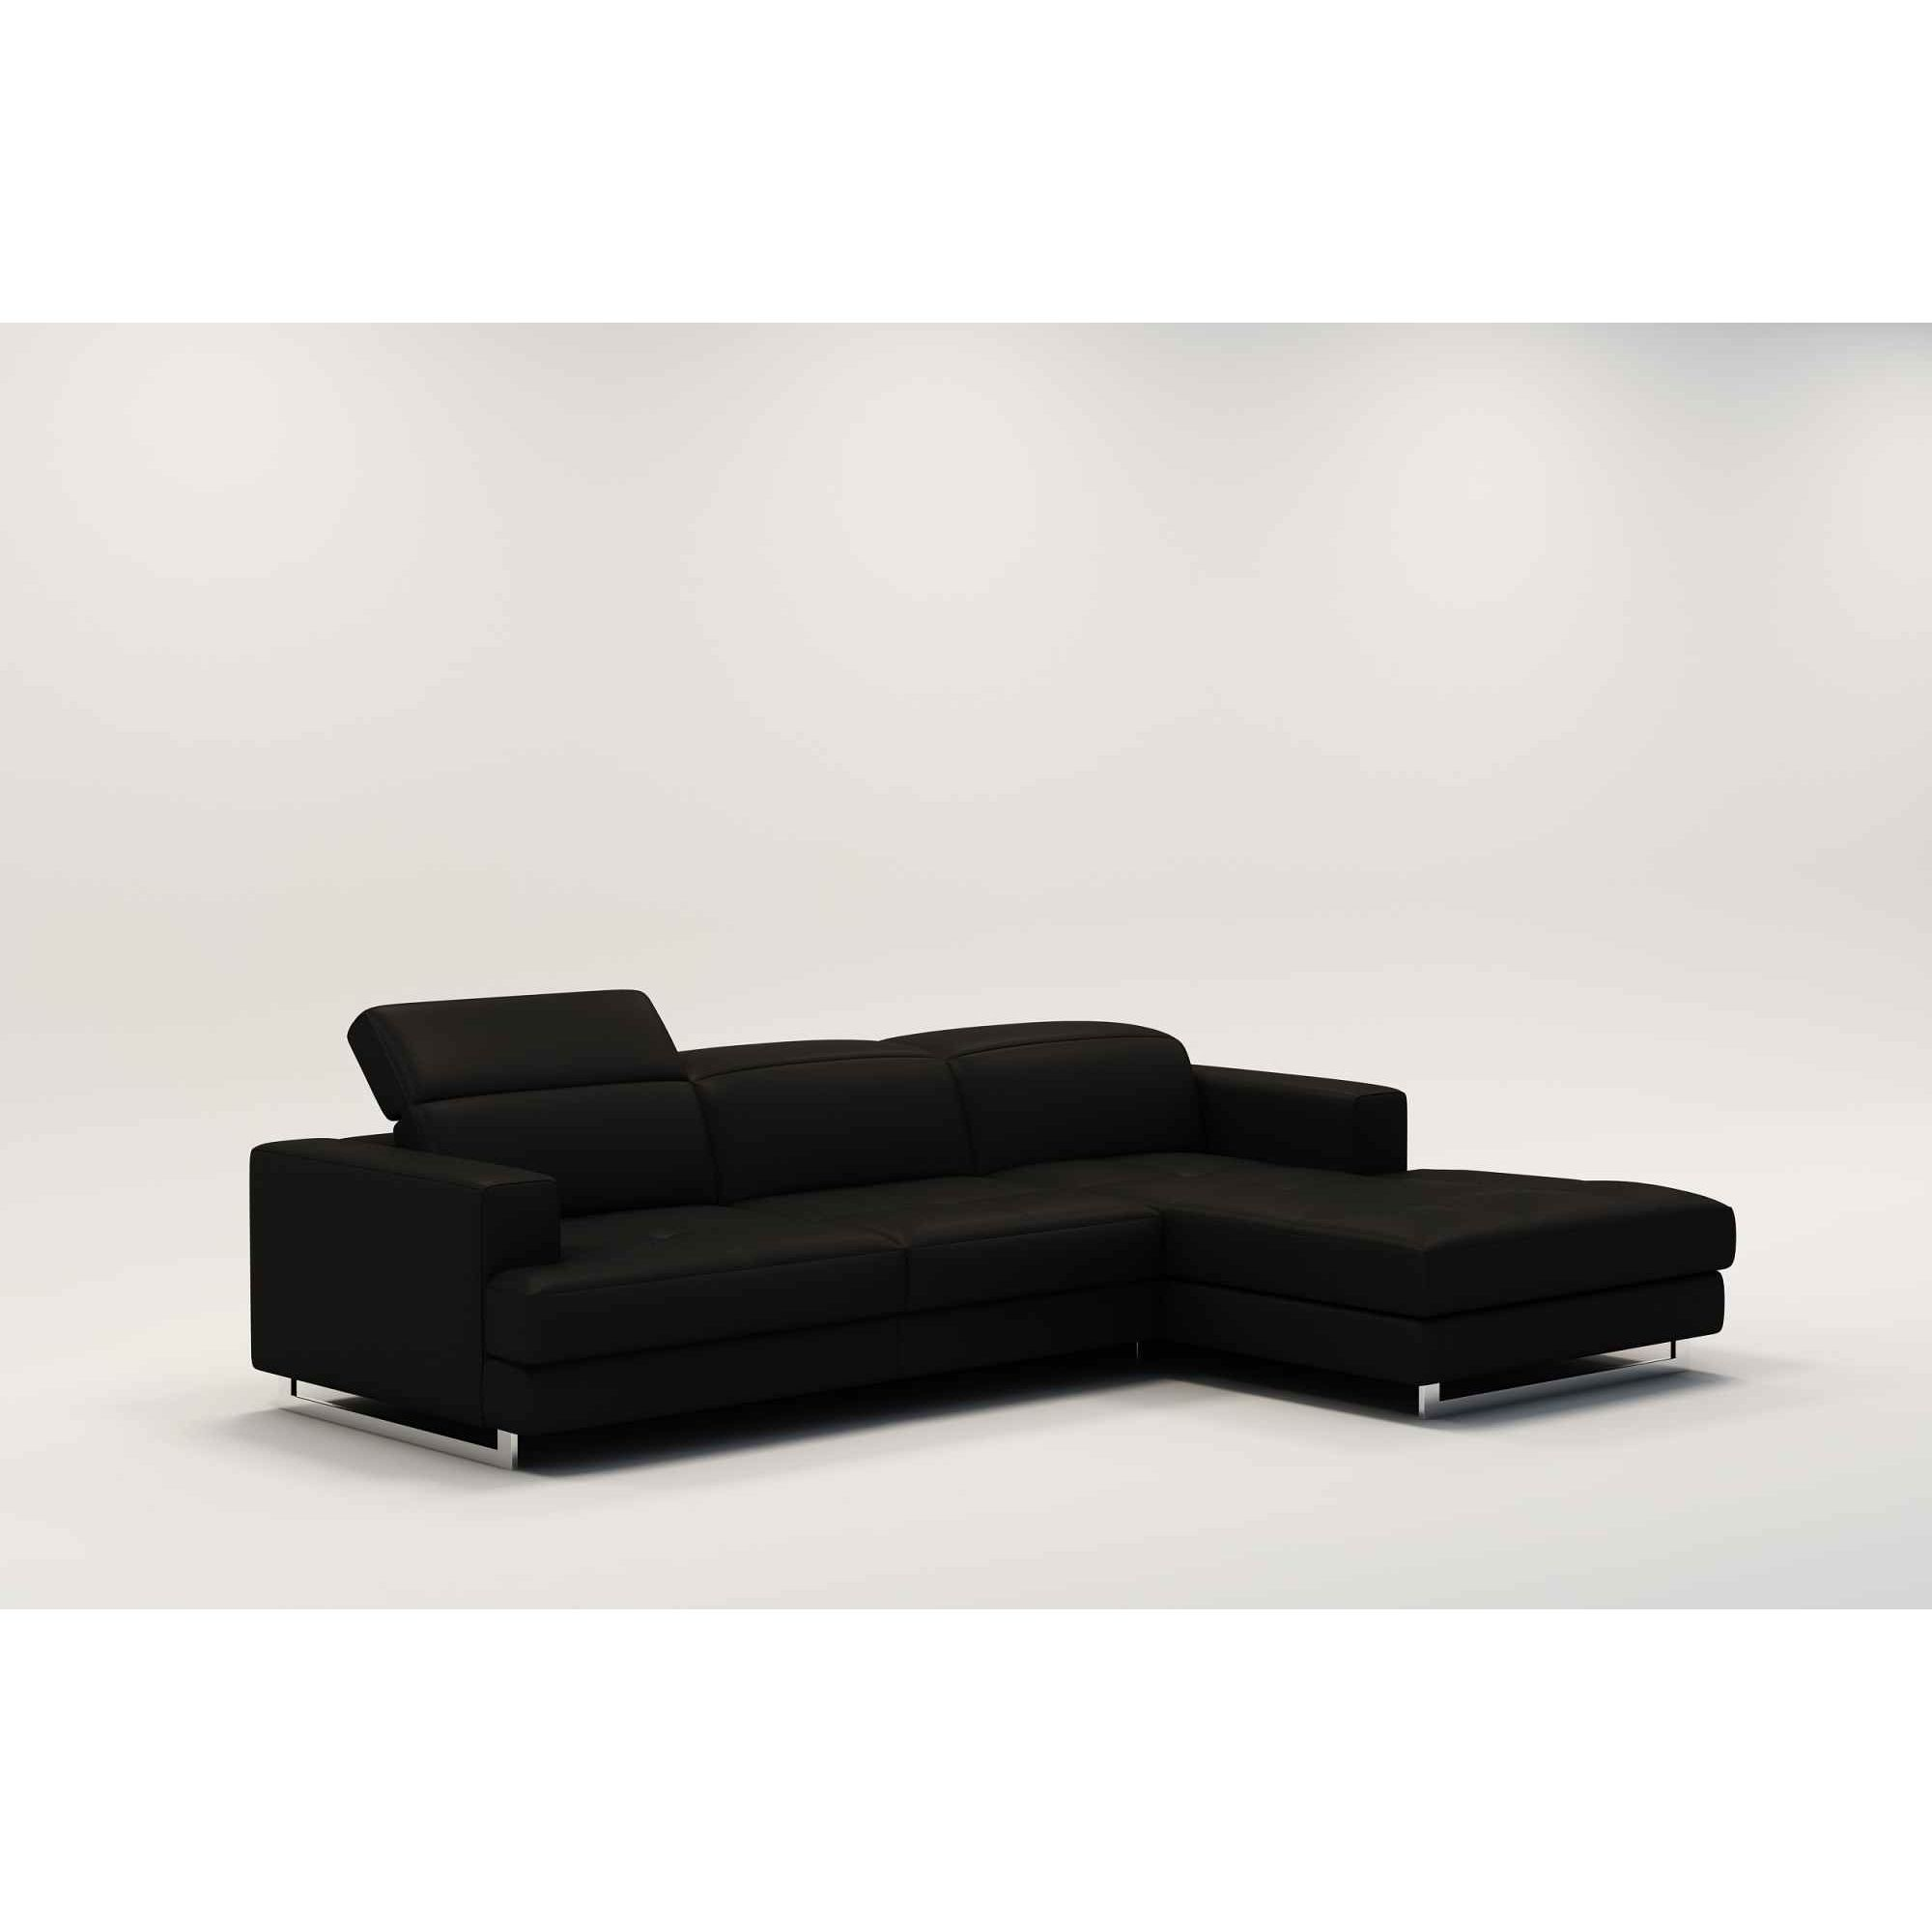 Deco in paris canape d angle design en cuir noir cris for Canape cuir noir